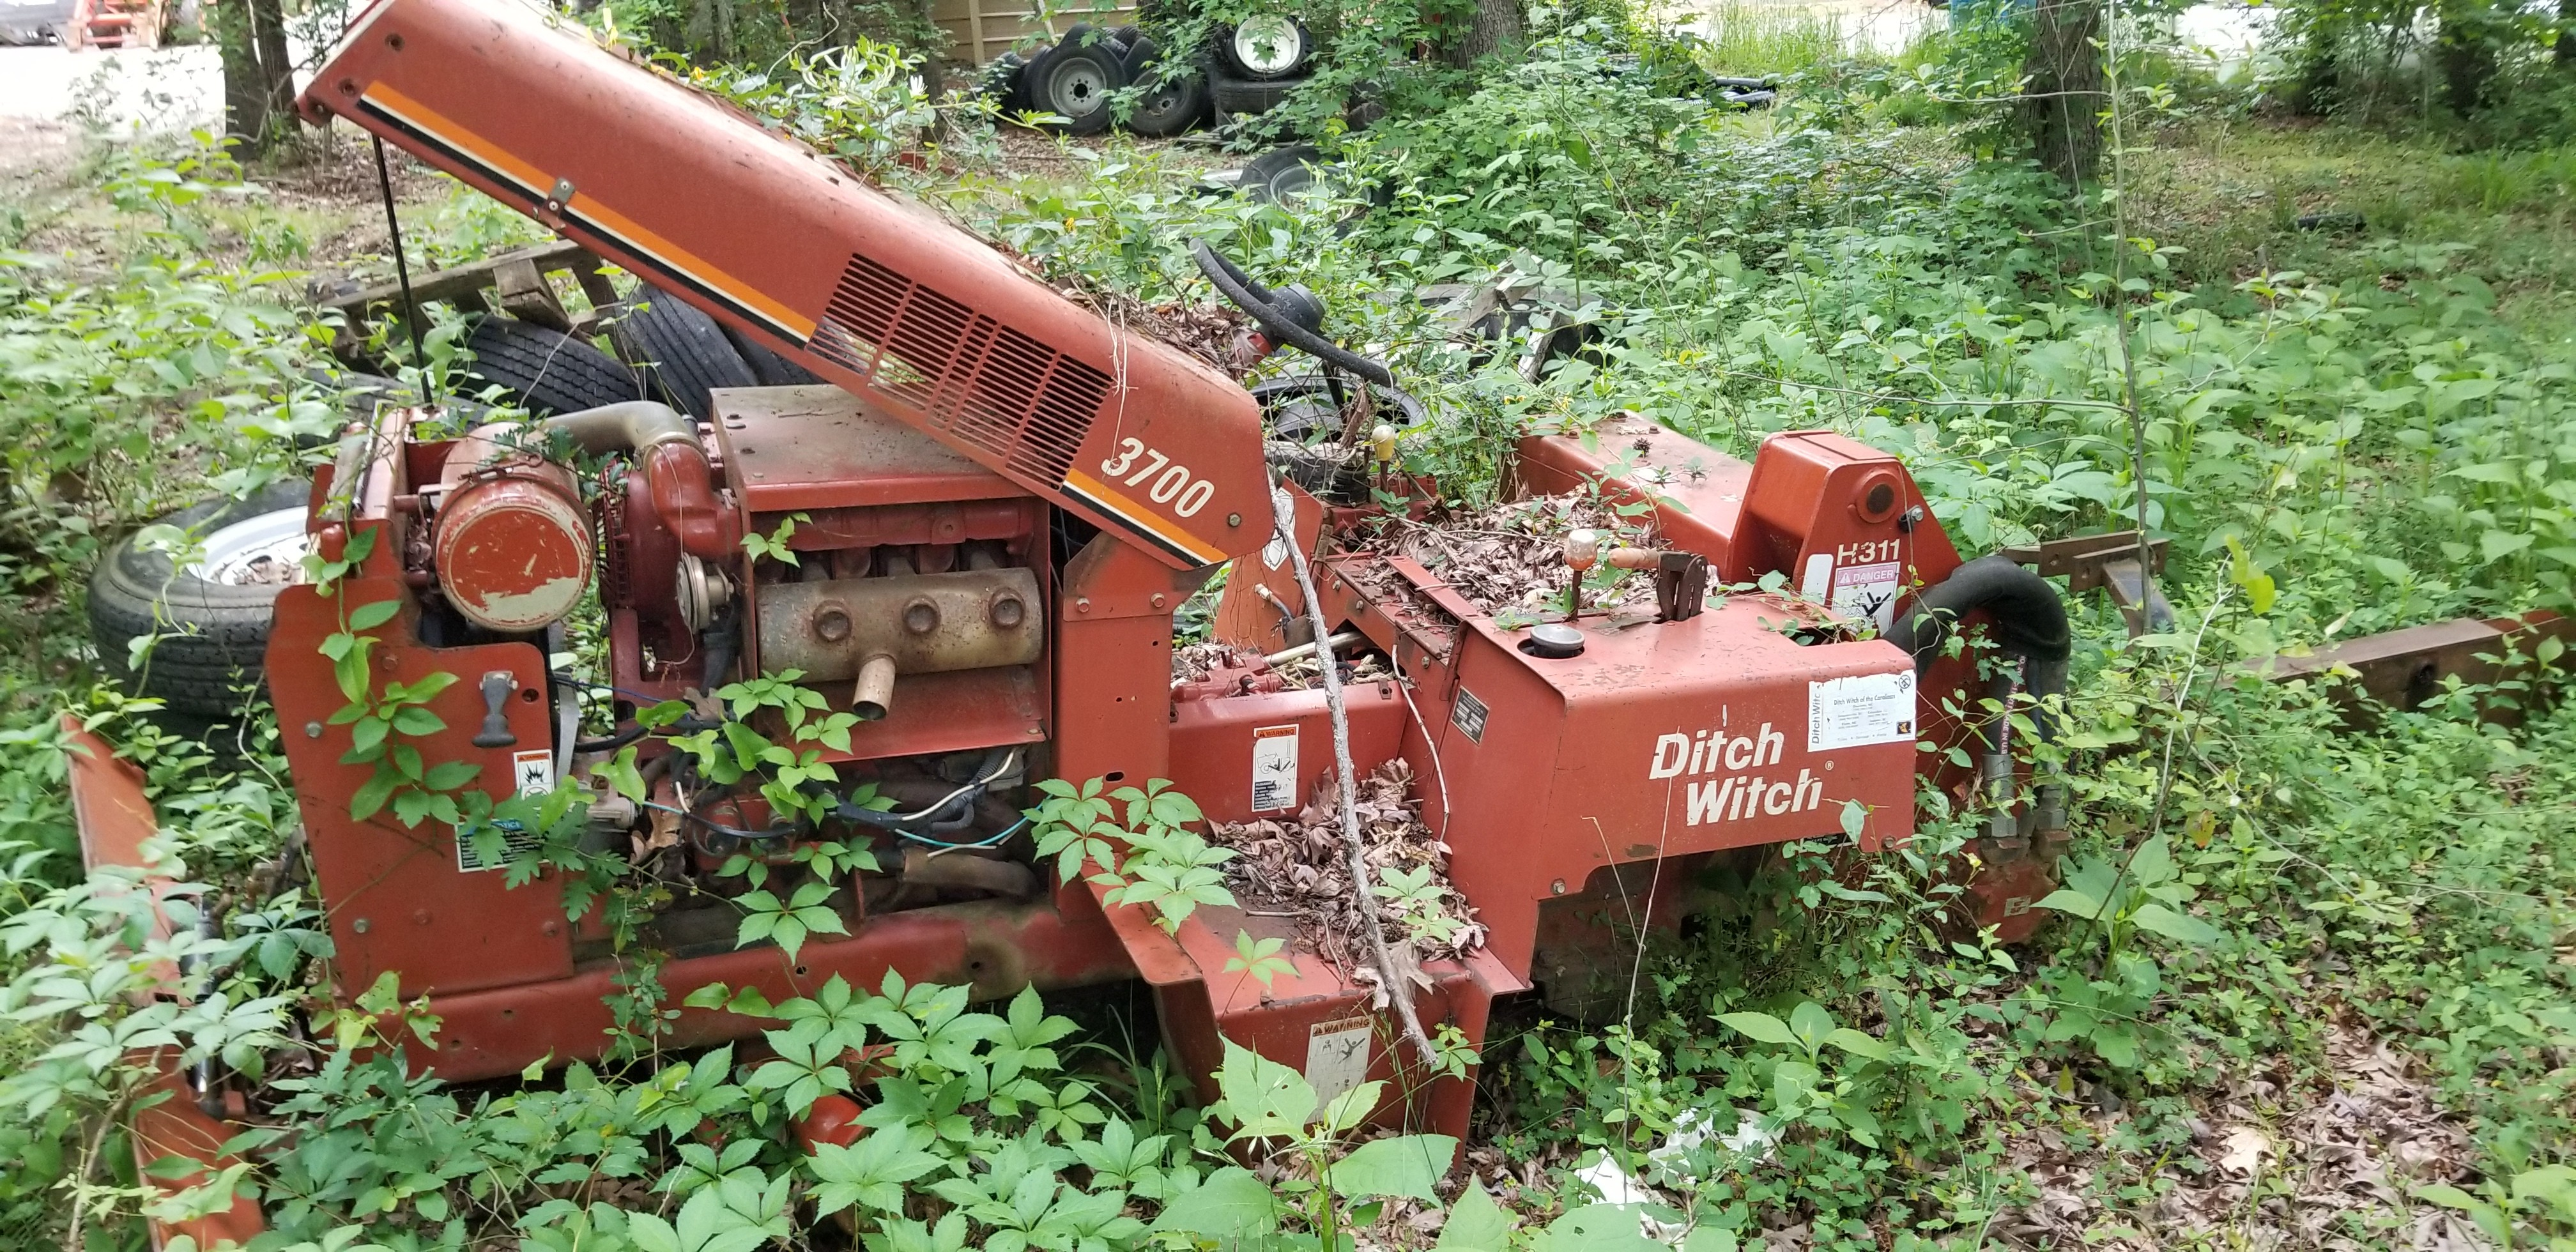 Ditch Witch, parts, salvage, junk, trencher, used, 3700